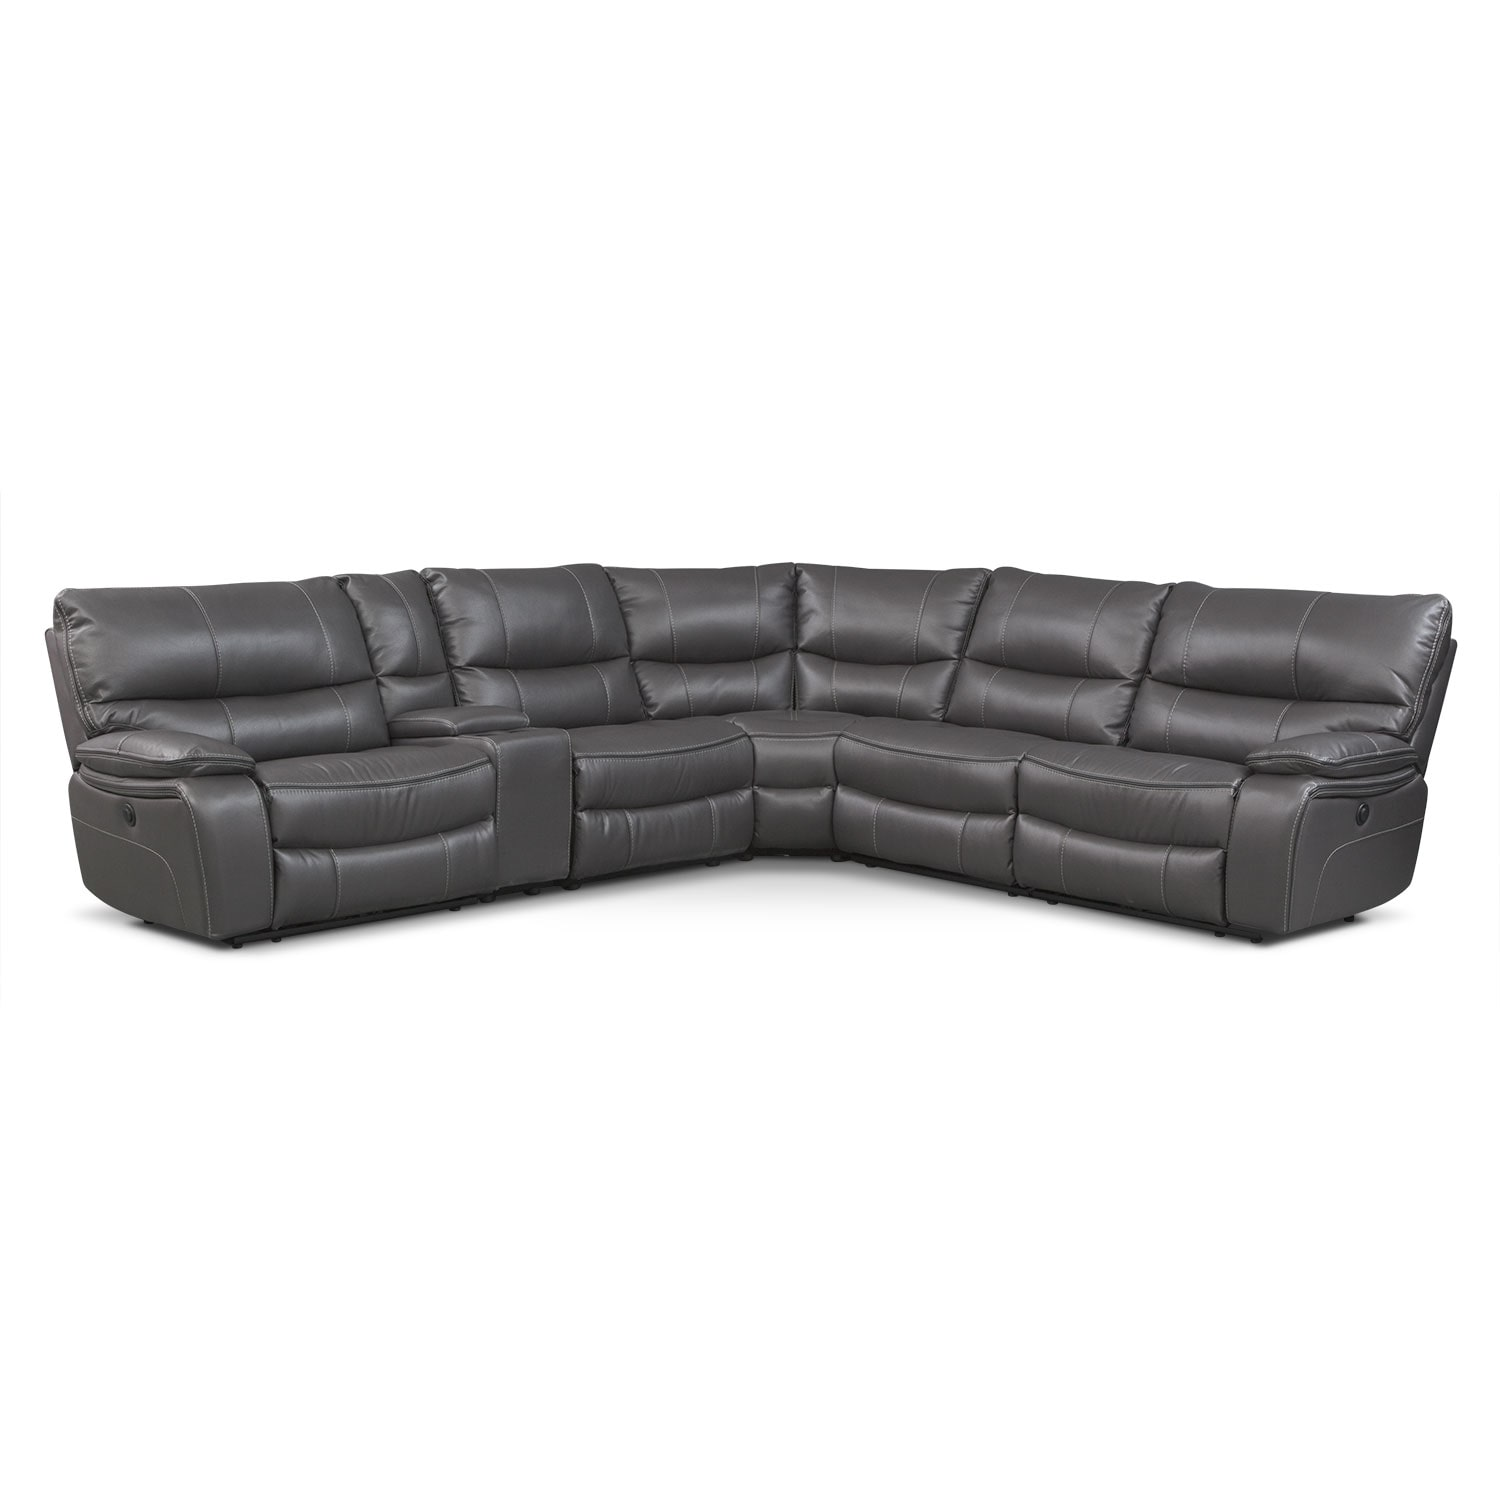 Orlando 6 Pc. Power Reclining Sectional